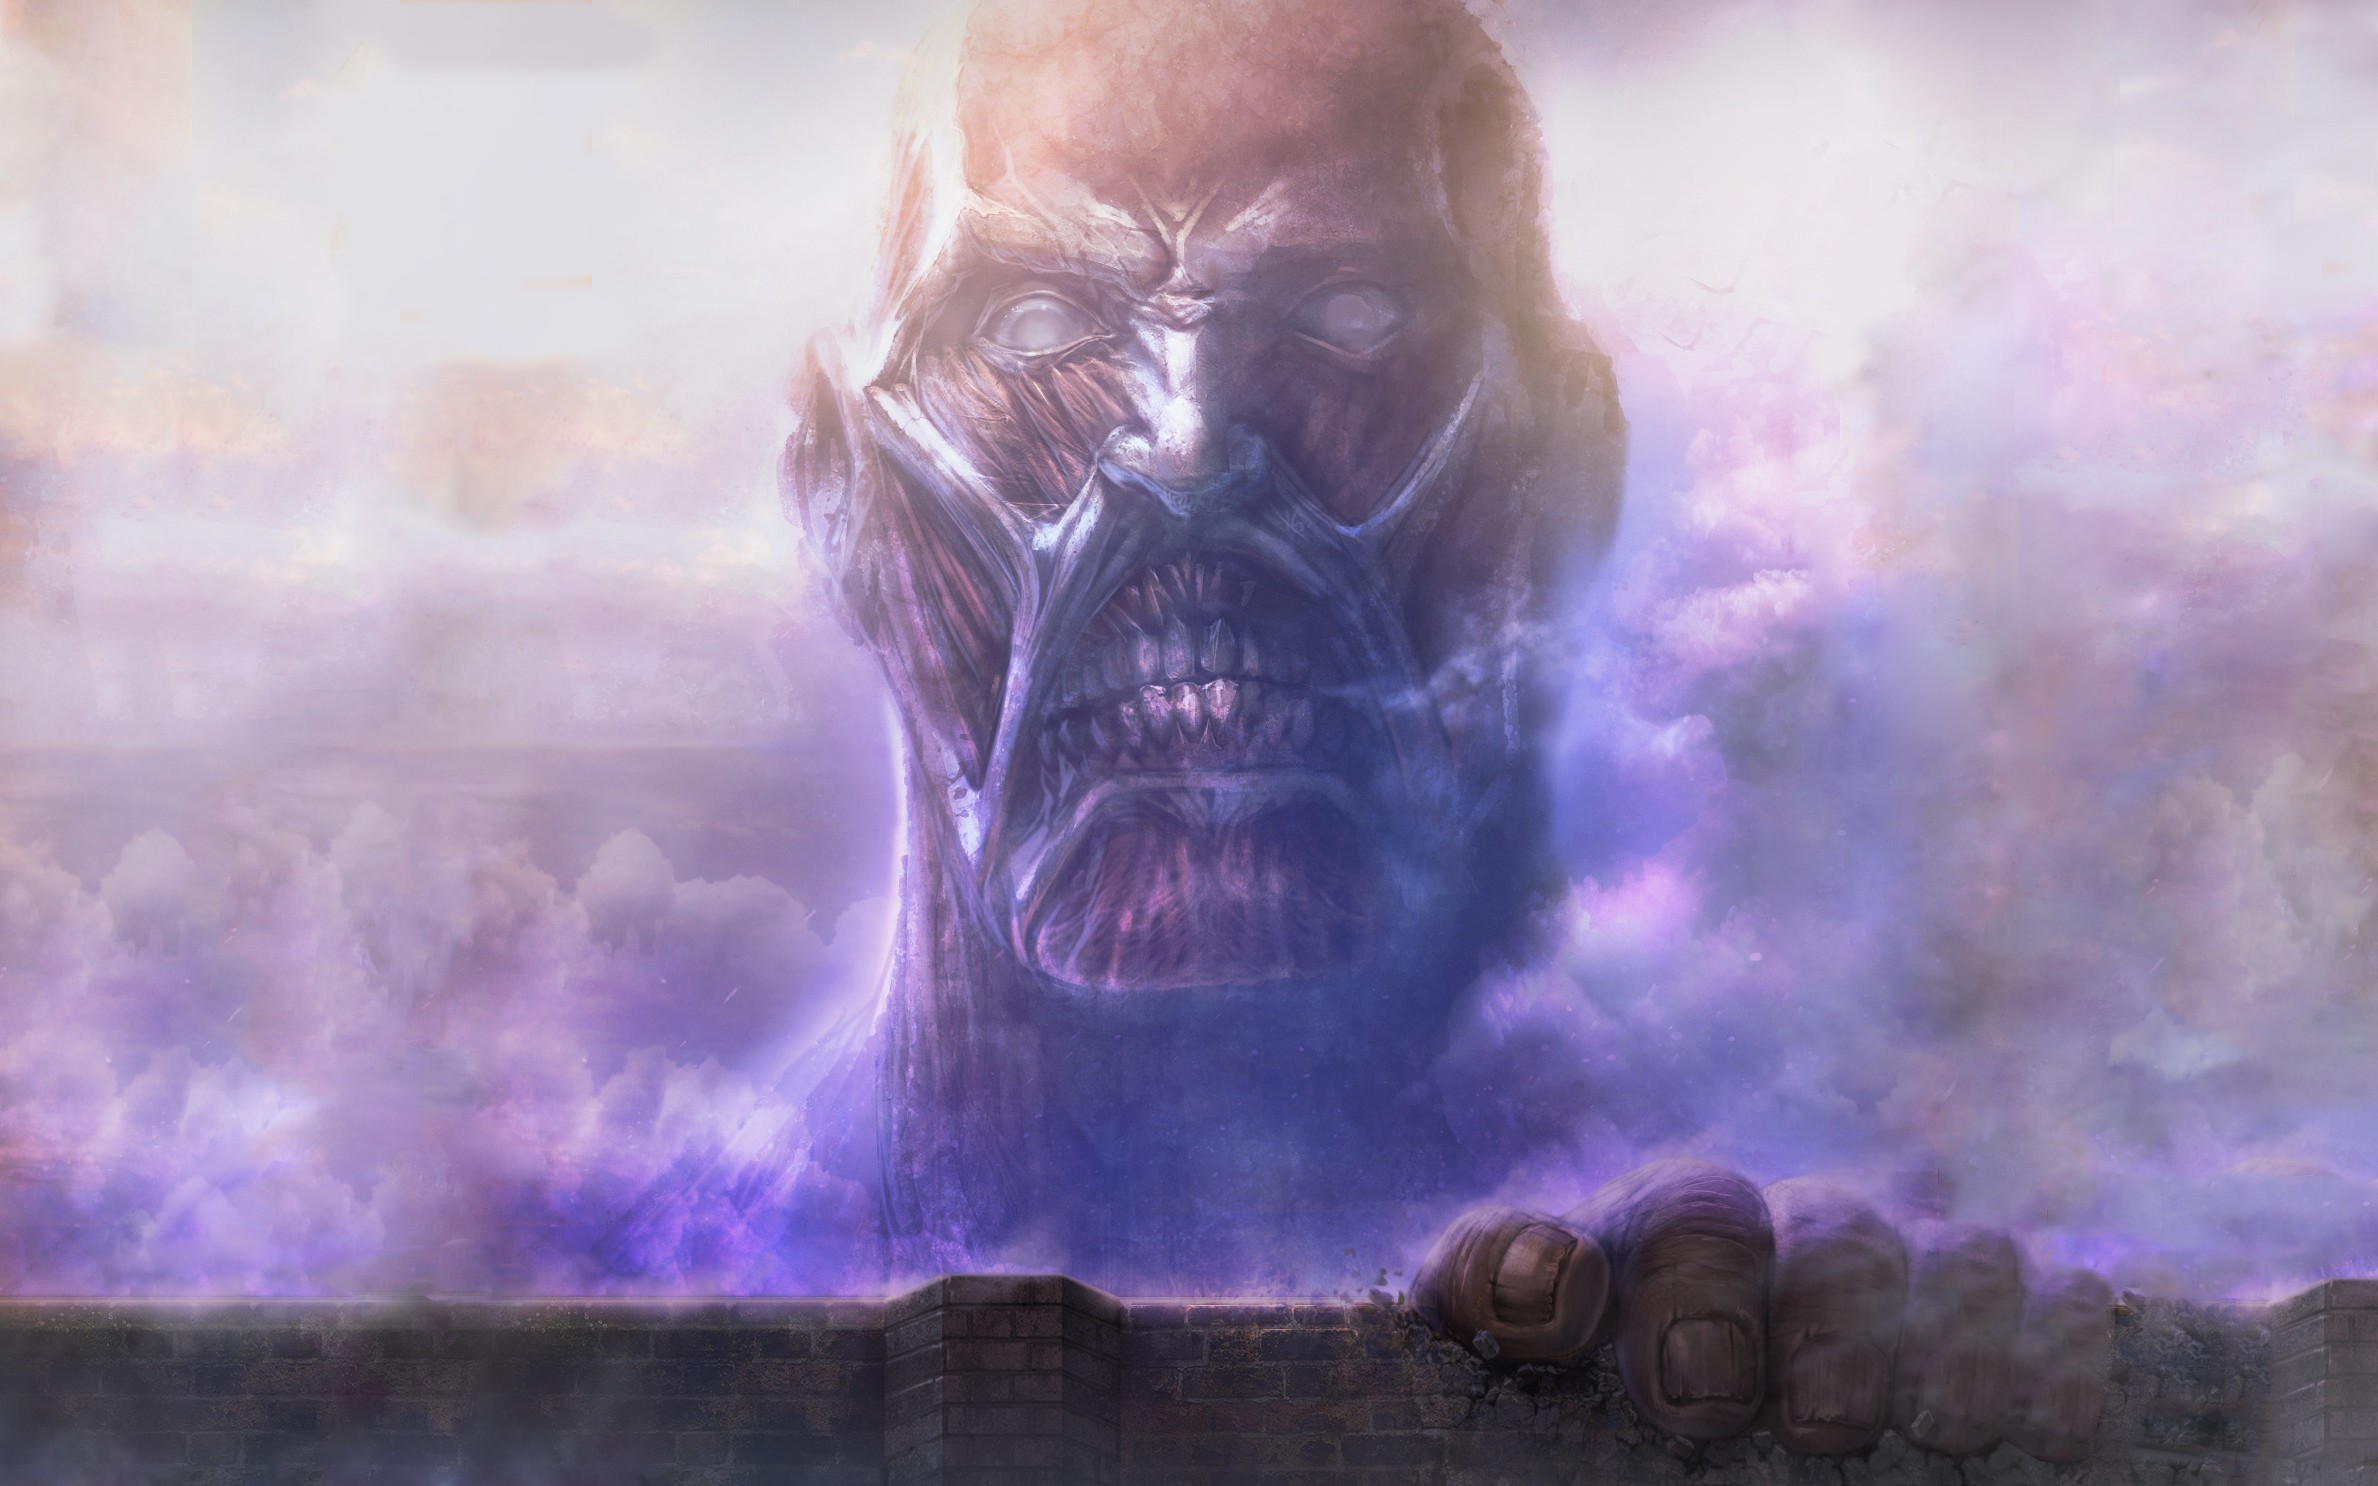 612514 Title Colossal Titan Anime Attack On Titan Attack On Titan Wall Giant 2378x1486 Download Hd Wallpaper Wallpapertip